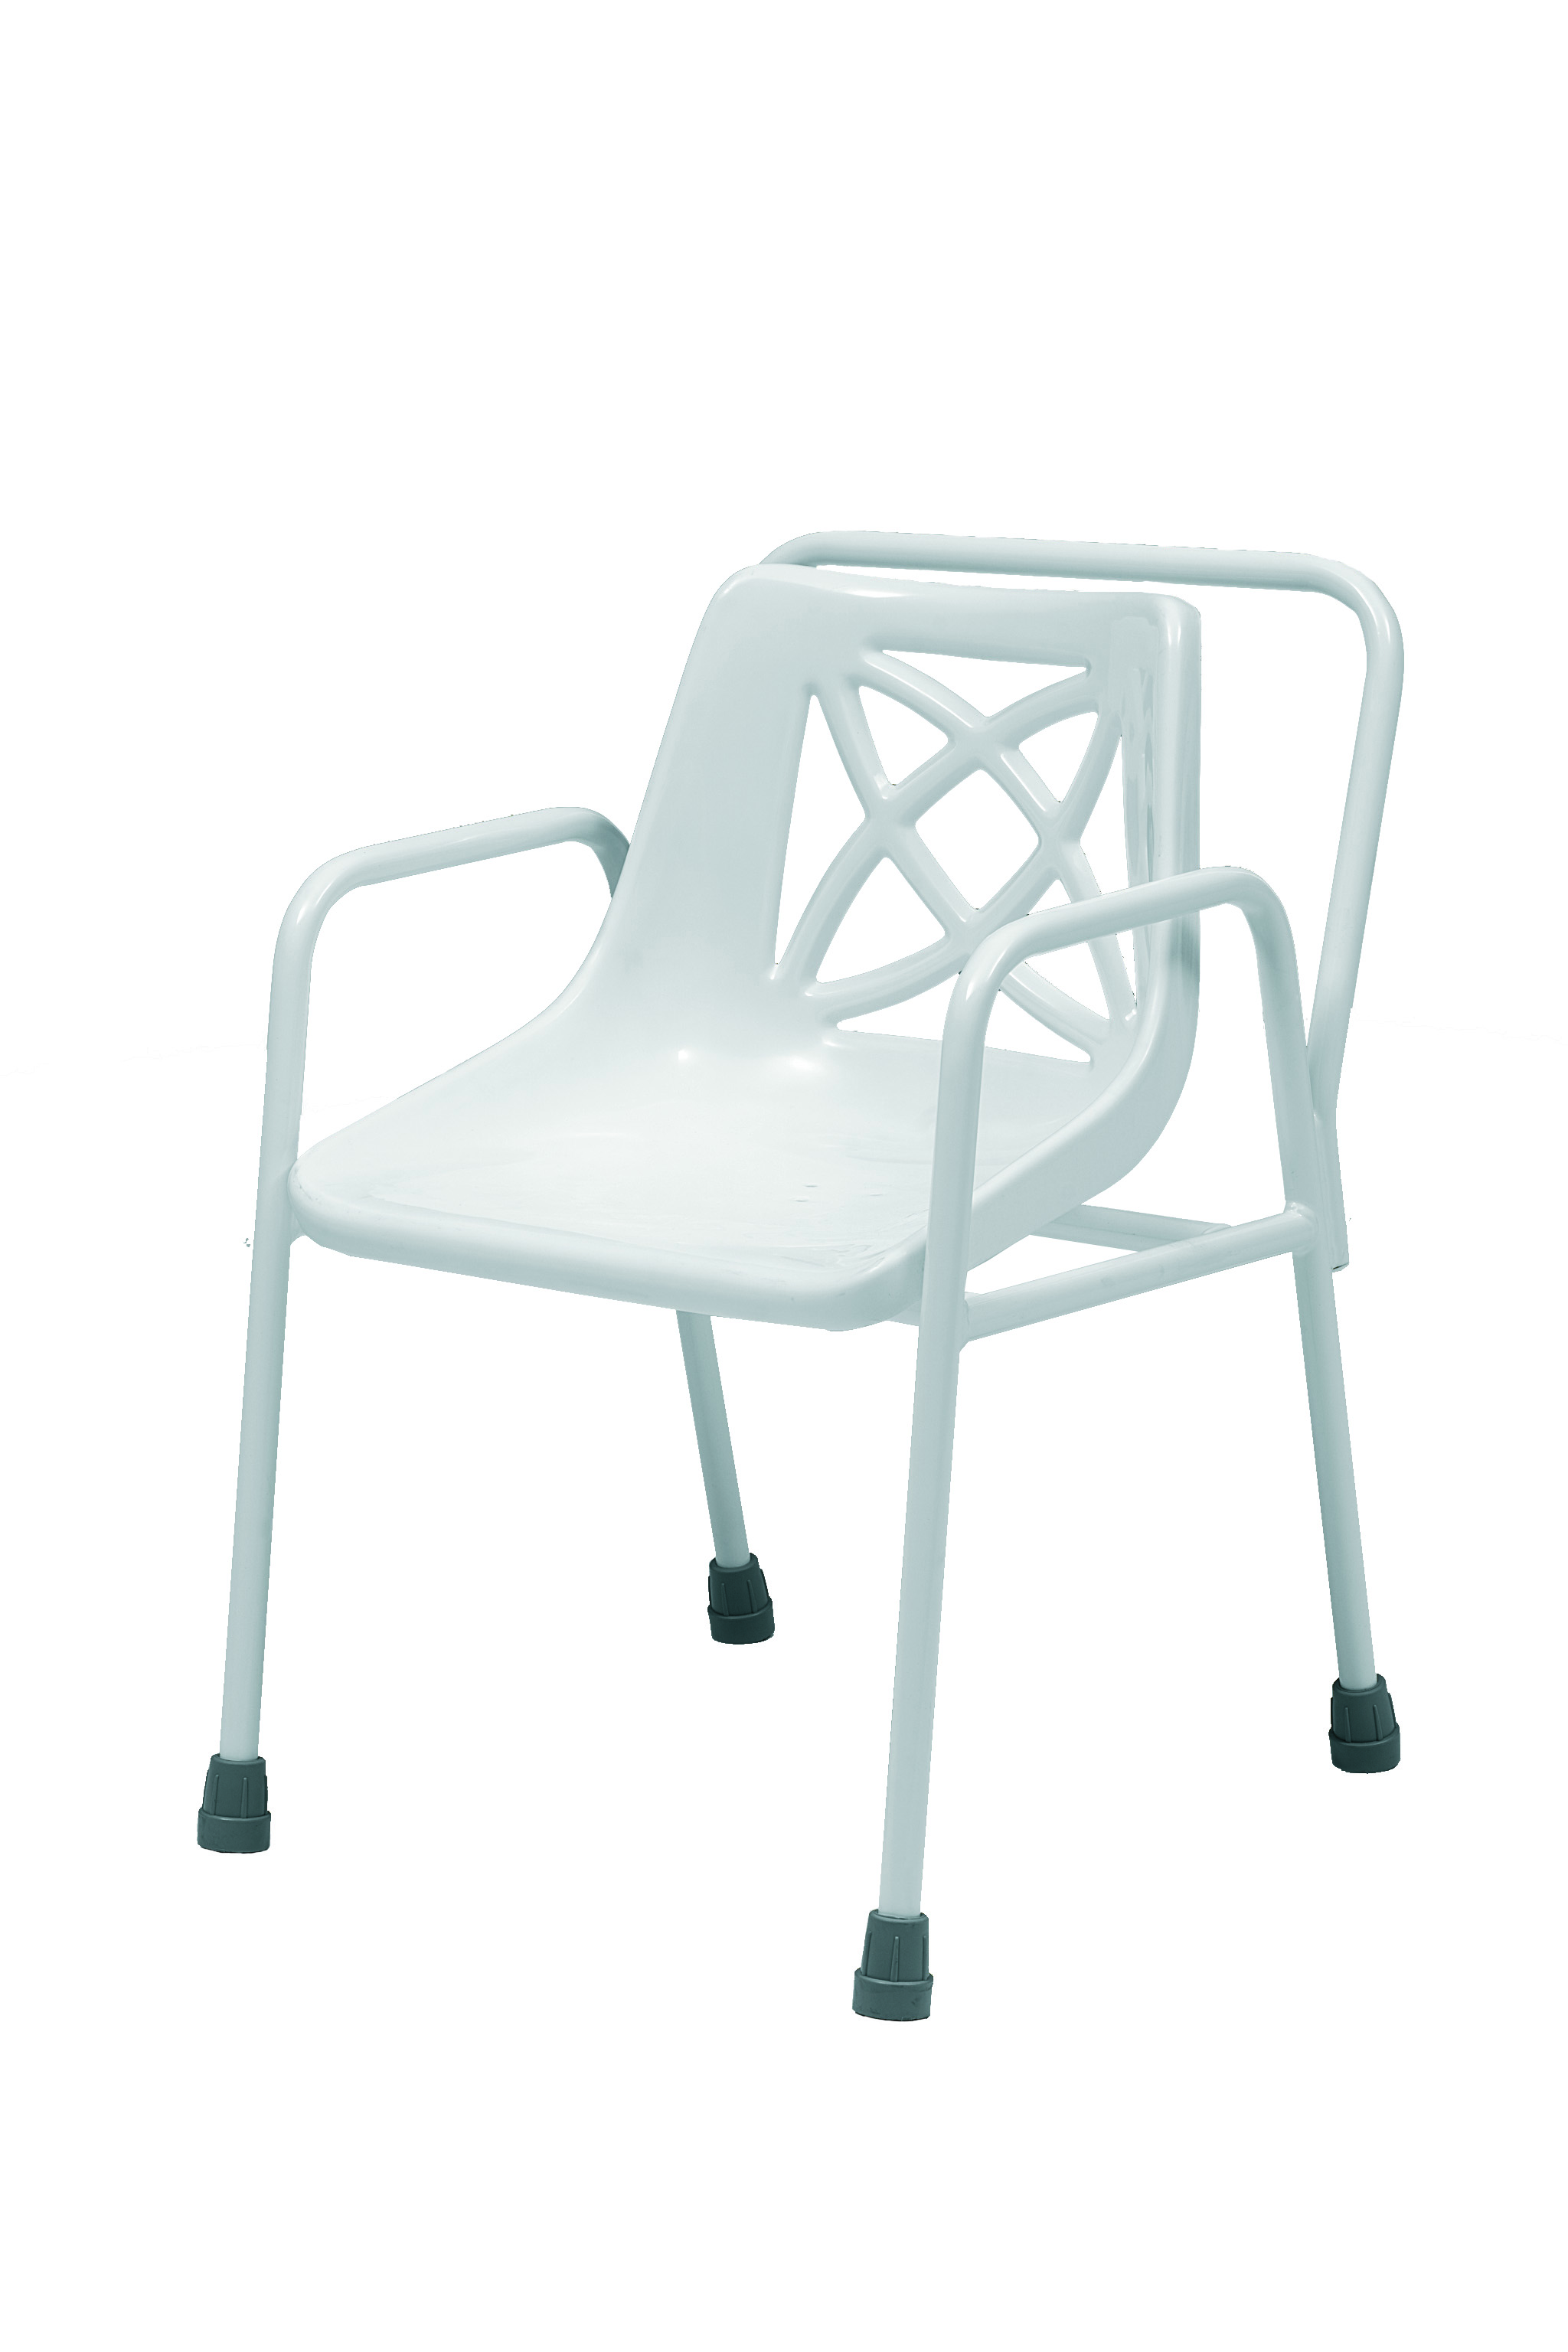 Heavy duty shower chair-4553/HD – Stable Able